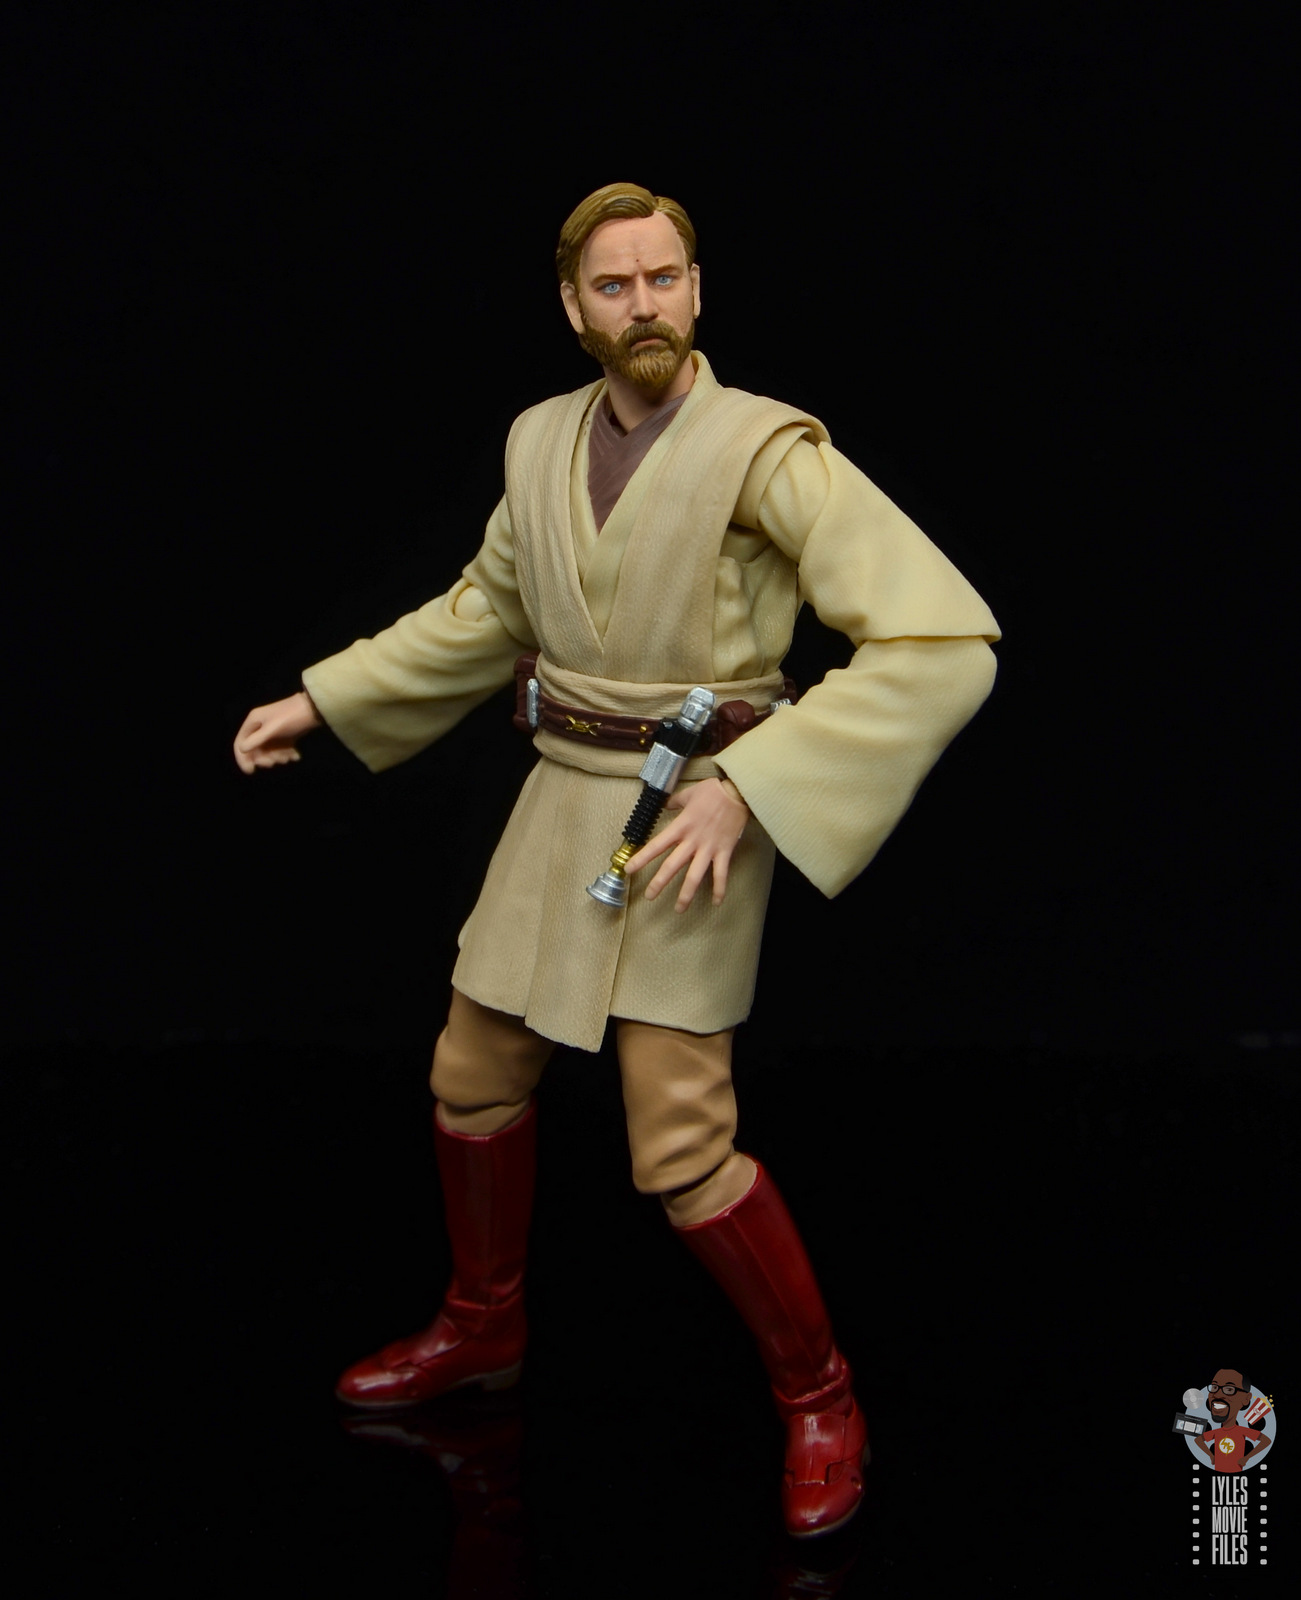 Sh Figuarts Obi Wan Kenobi Revenge Of The Sith Figure Review Reaching For Lightsaber Lyles Movie Files